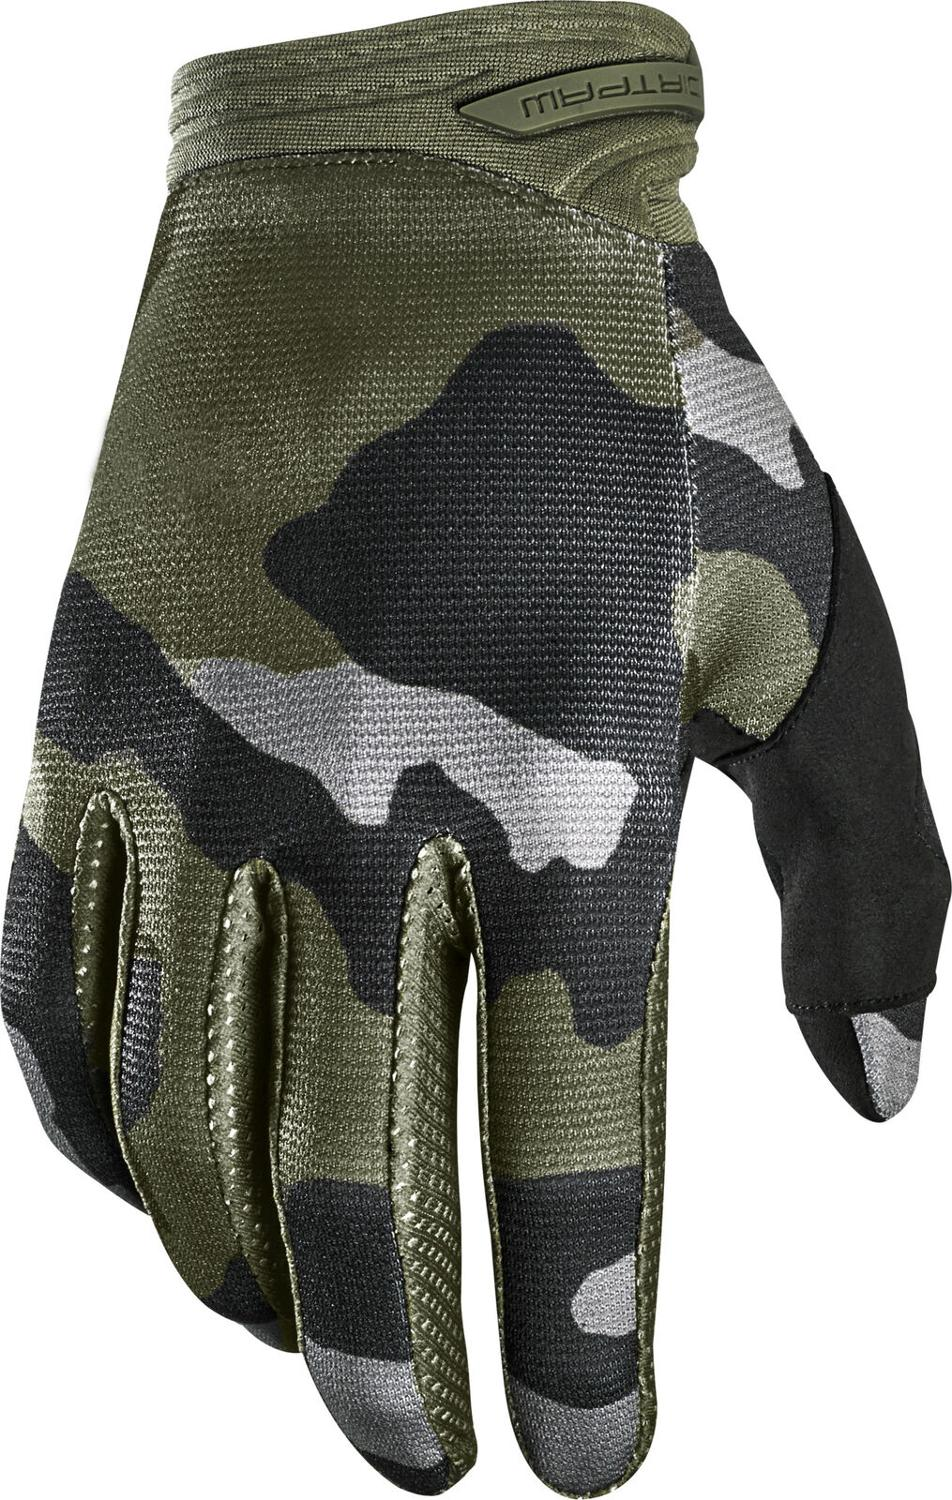 Delicate Fox Dirtpaw PRZM Camo MX Offroad Gloves MTB Bike Mountain Bicycle Racing Glove